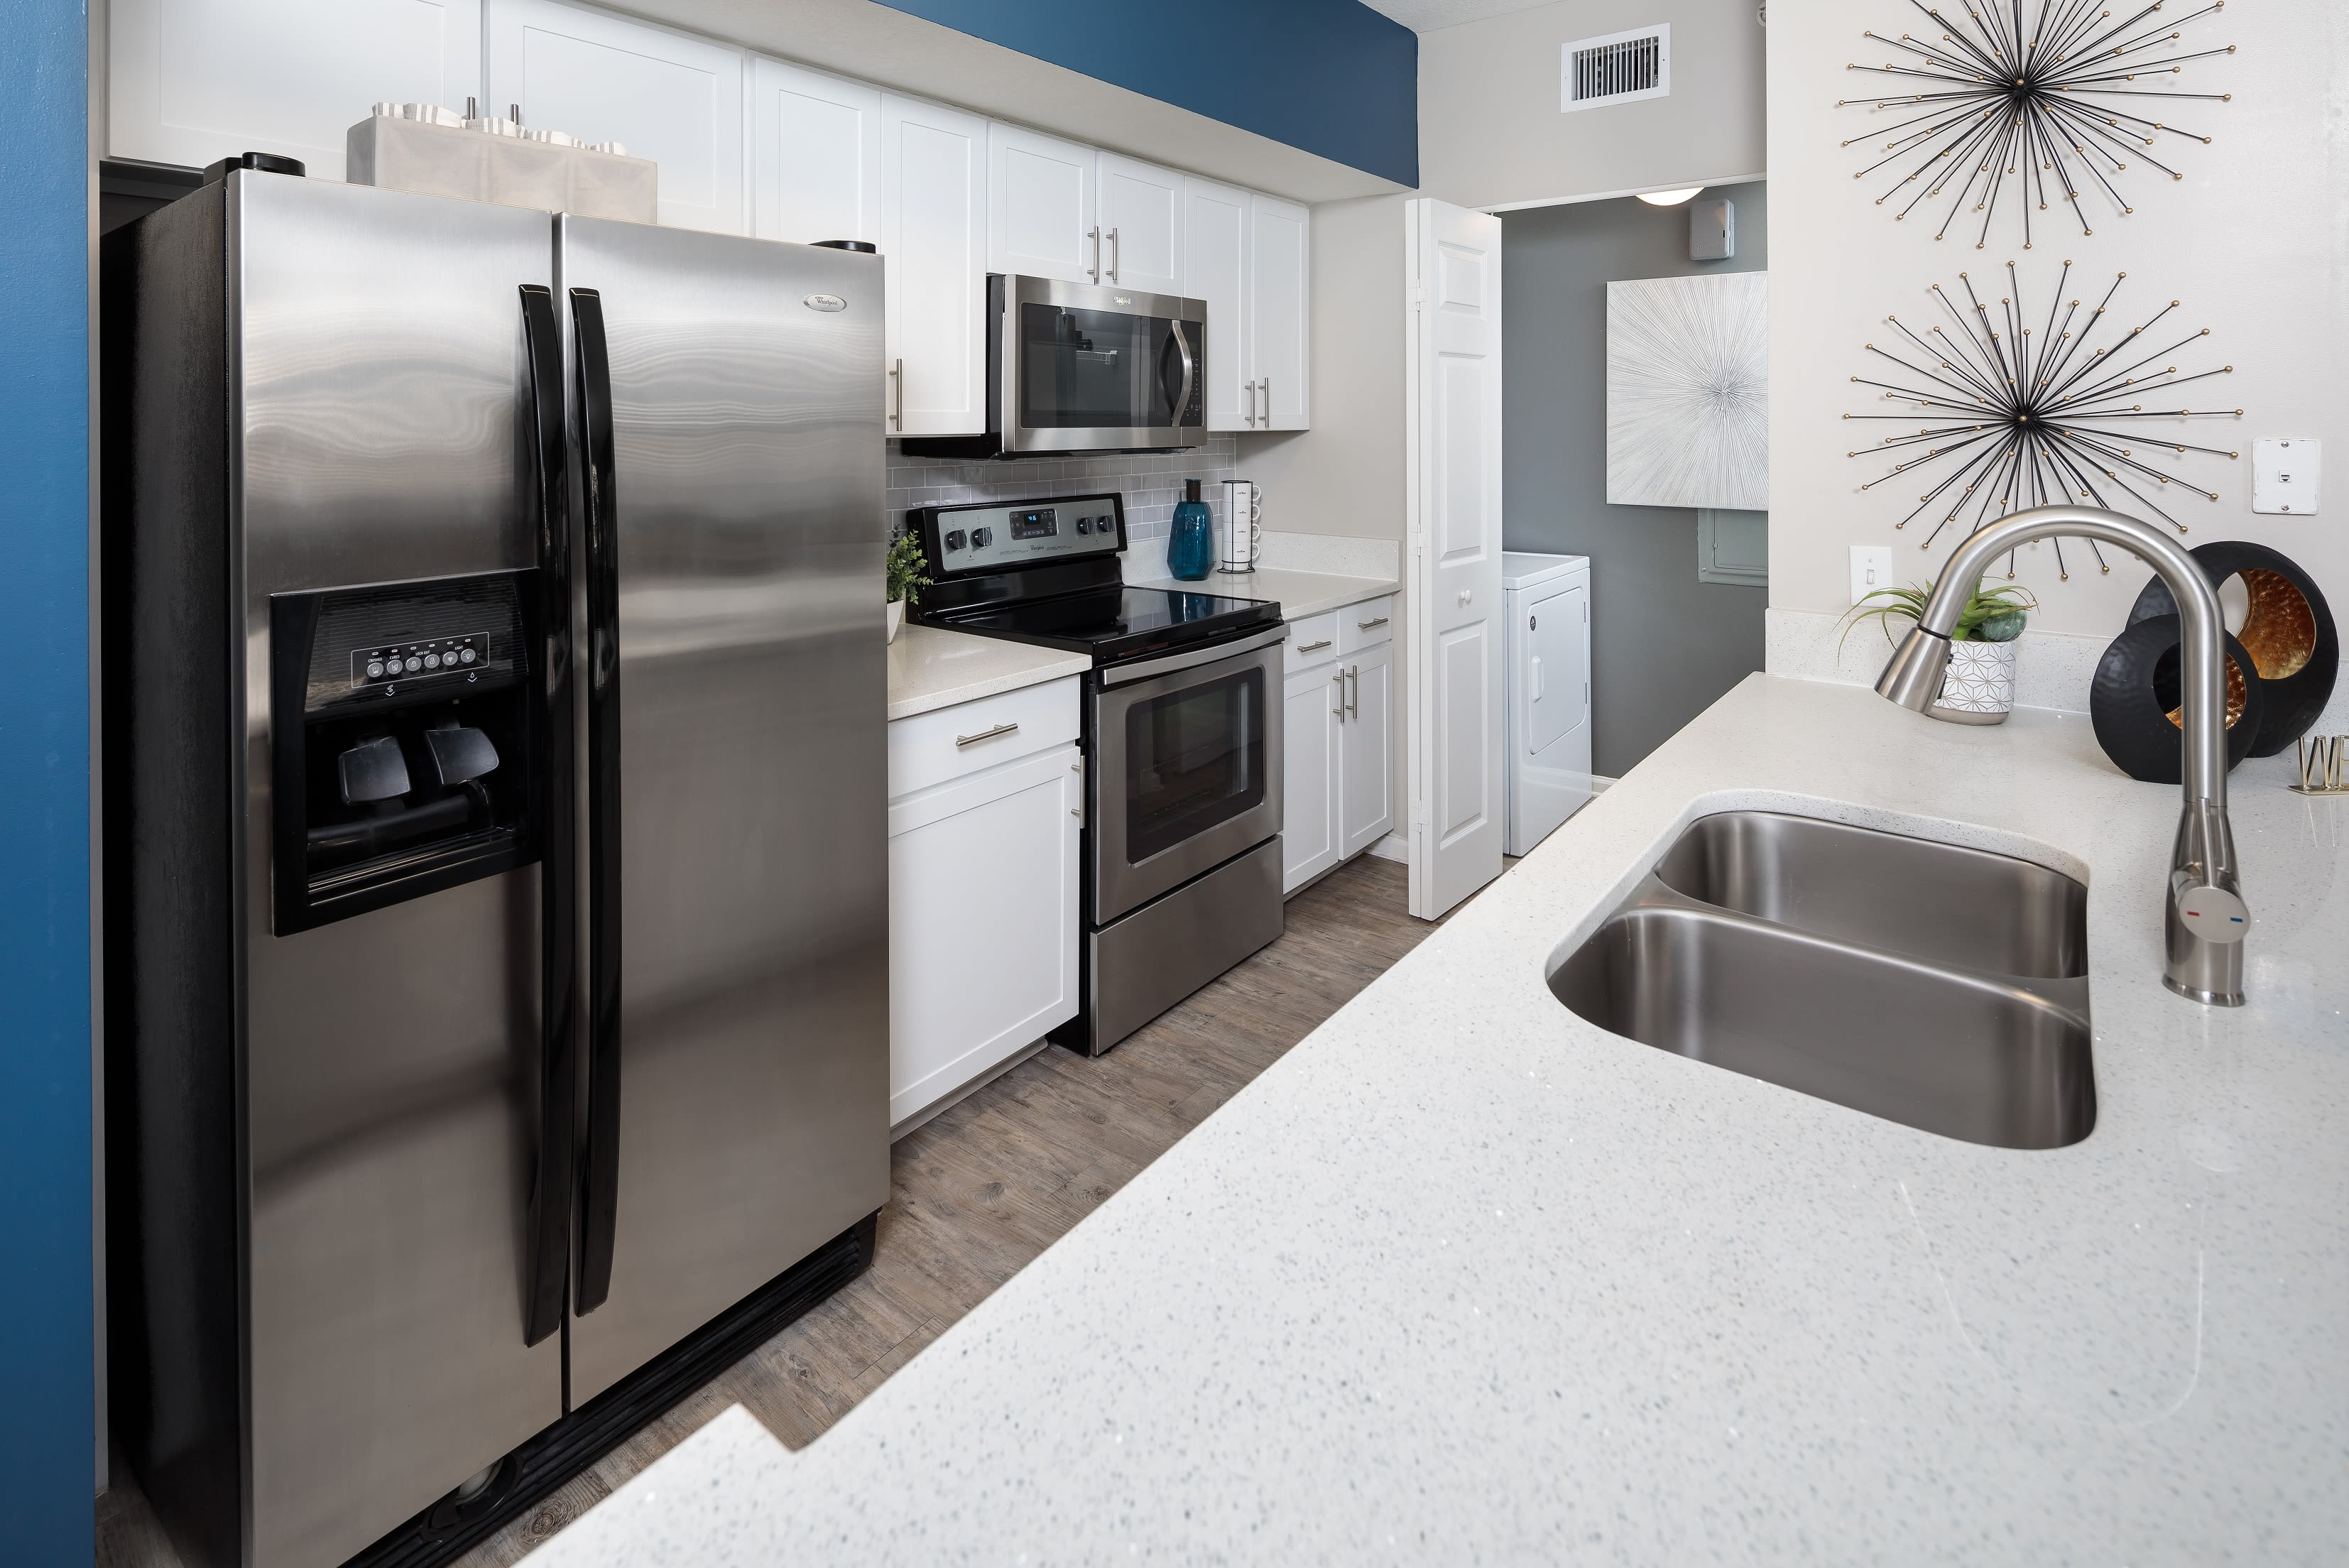 Sleek white cabinets and stainless steel appliances in the kitchen at The Pearl in Ft Lauderdale, Florida